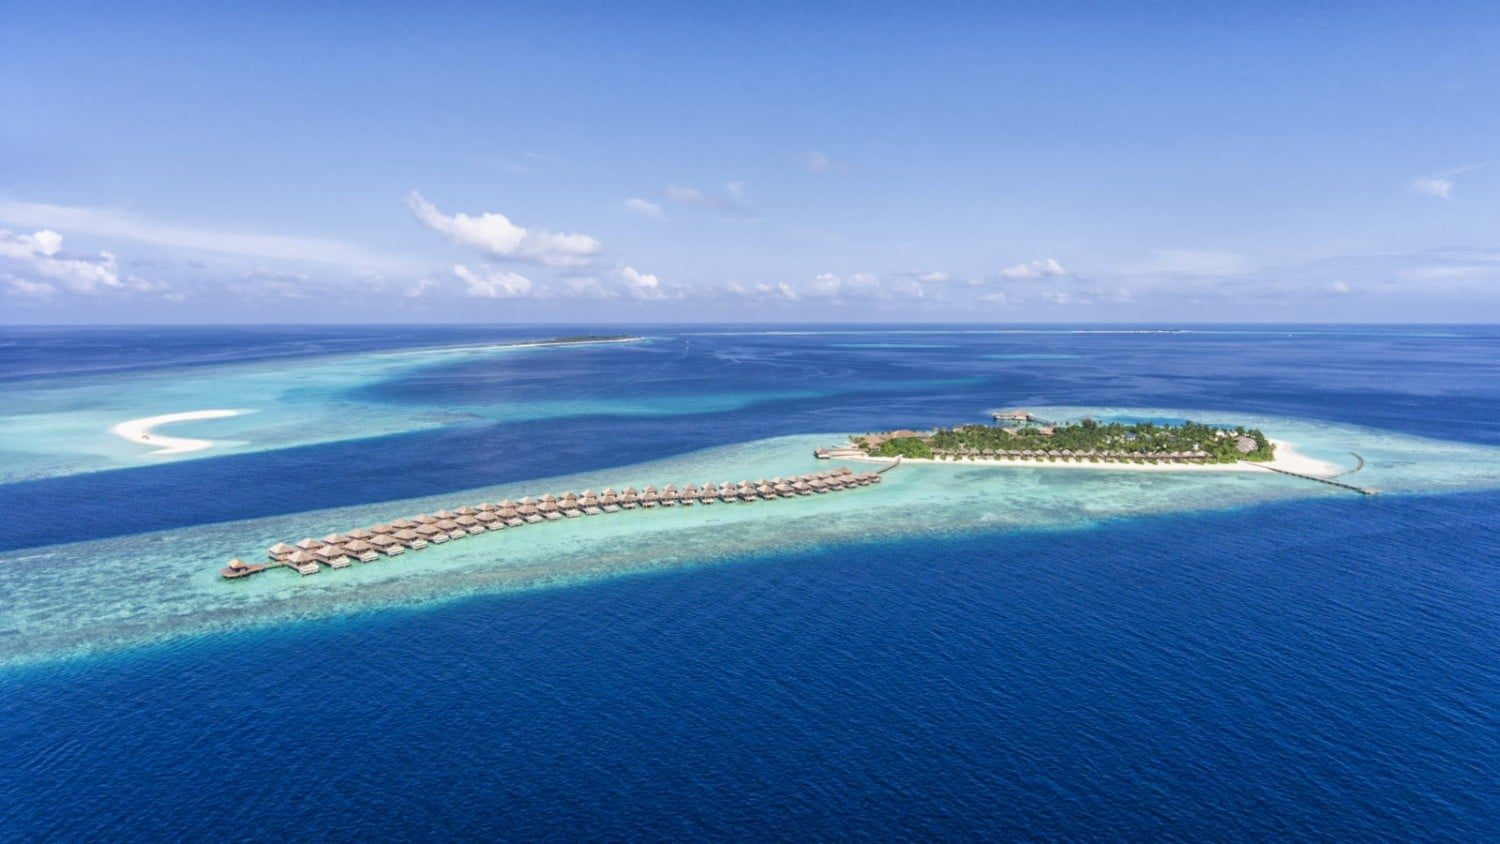 Hurawalhi Resort, the newest Maldives Island Resort